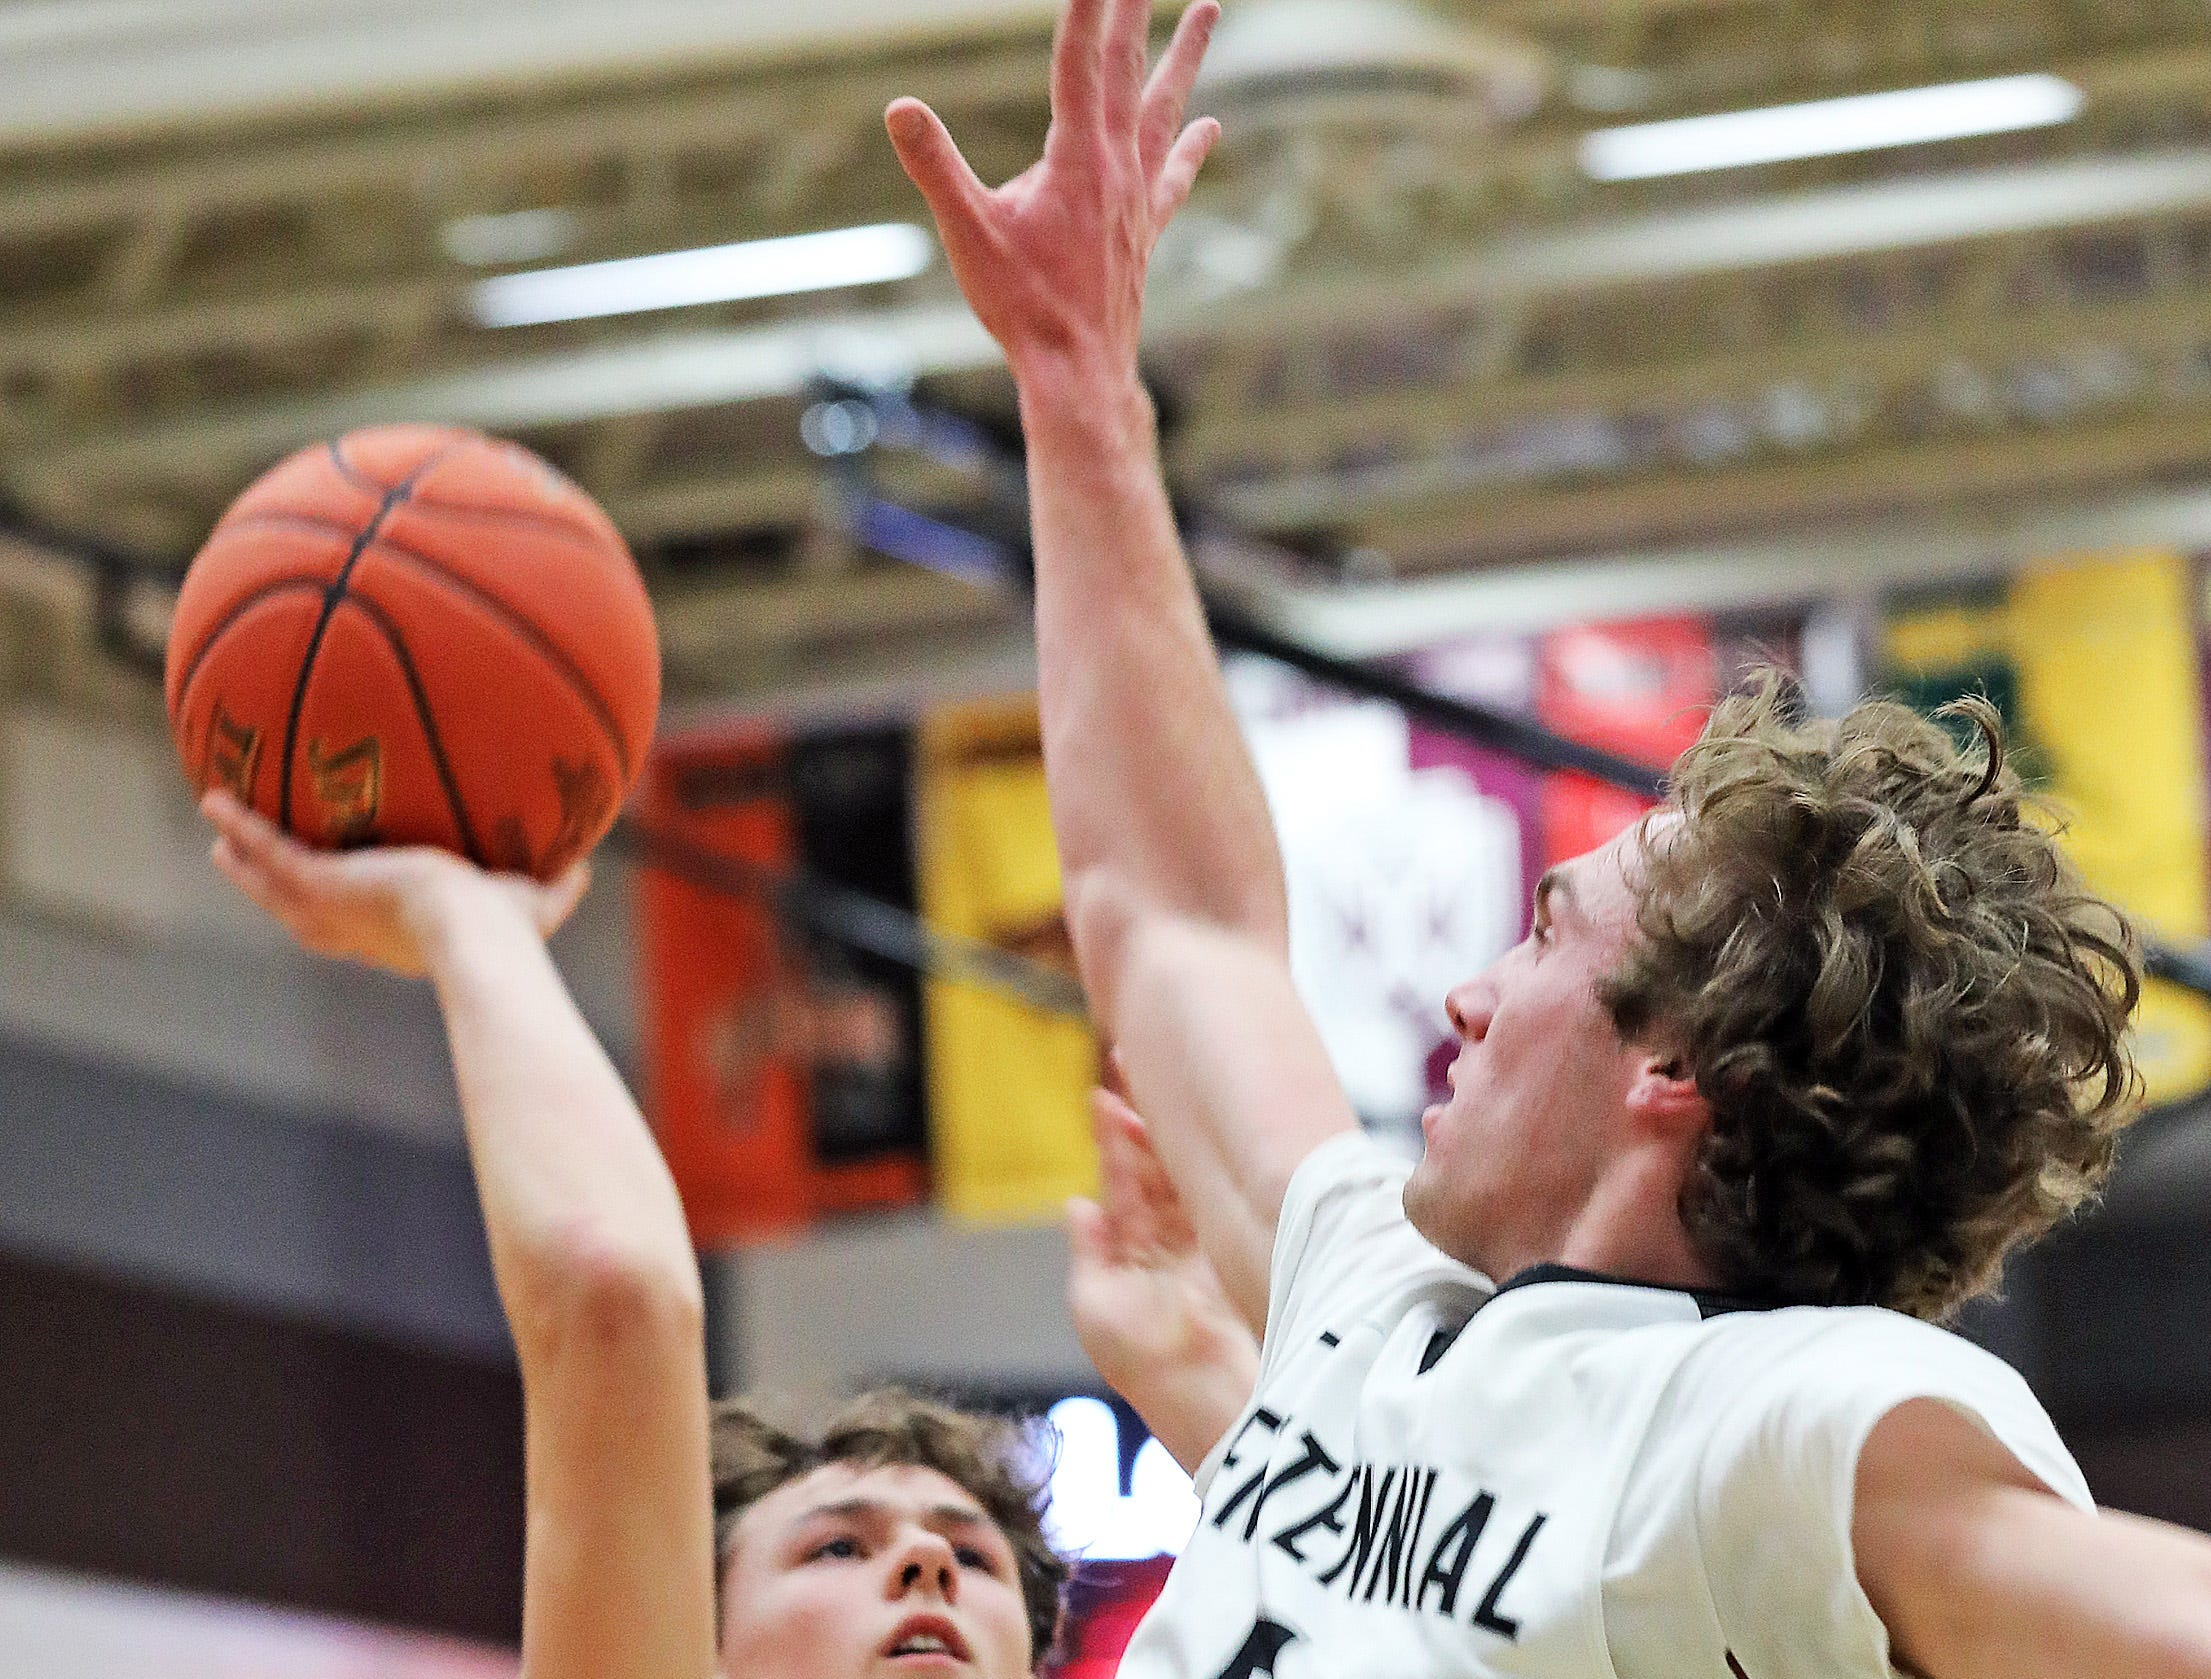 Ankeny Centennial junior Preston Kelling flies in for the block on Johnston sophomore Reid Grant as the Johnston Dragons compete against the Ankeny Centennial Jaguars in high school boys basketball on Friday, Jan. 4, 2019 at Ankeny Centennial High School.